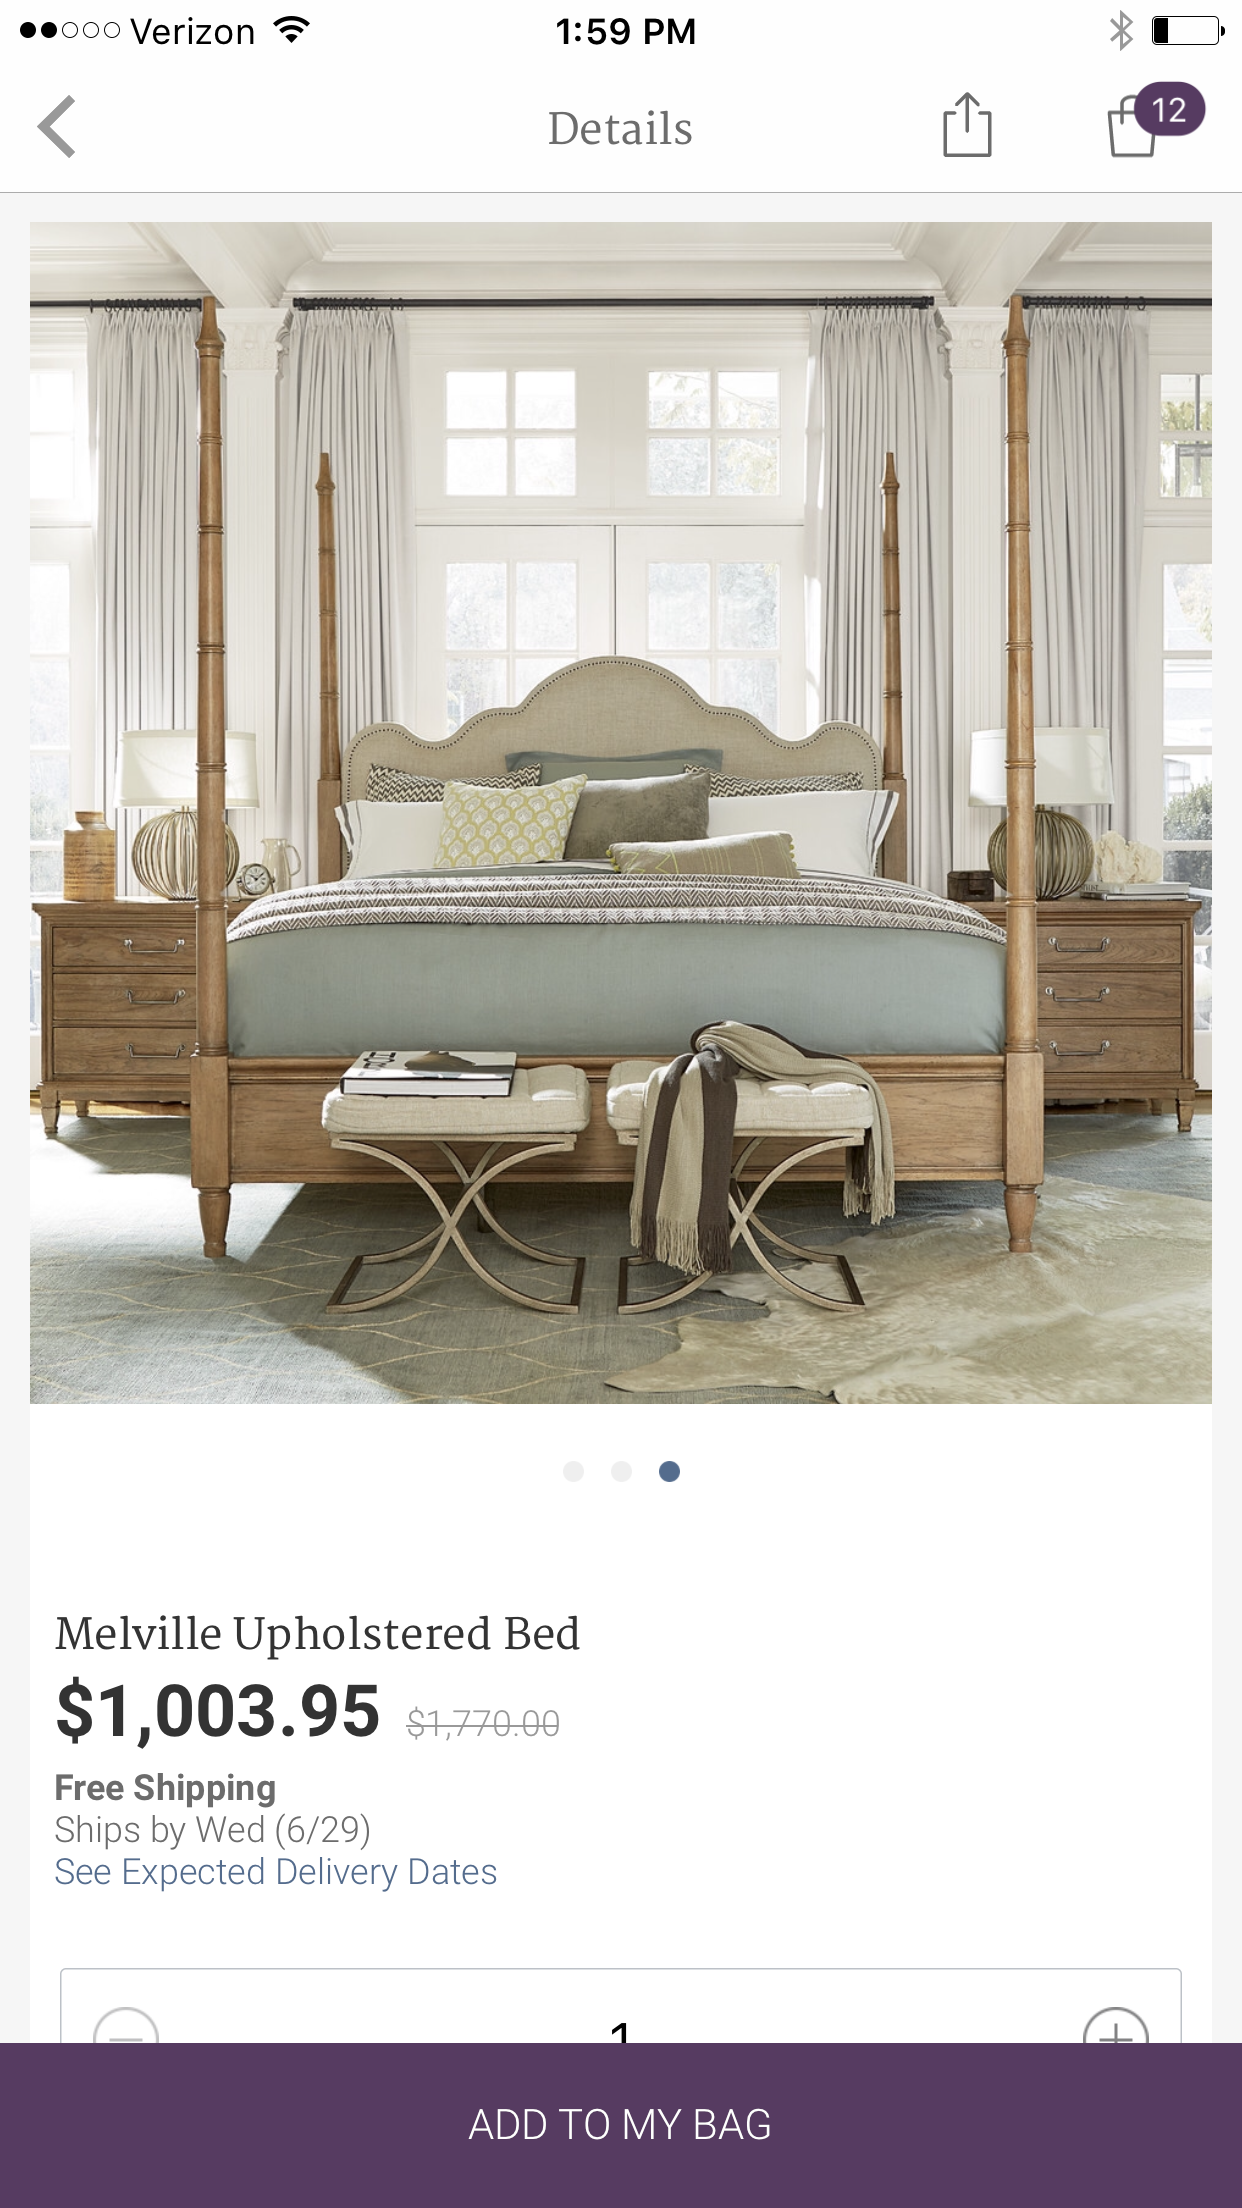 MAJOR savings on this Upholstered Poster Bed!